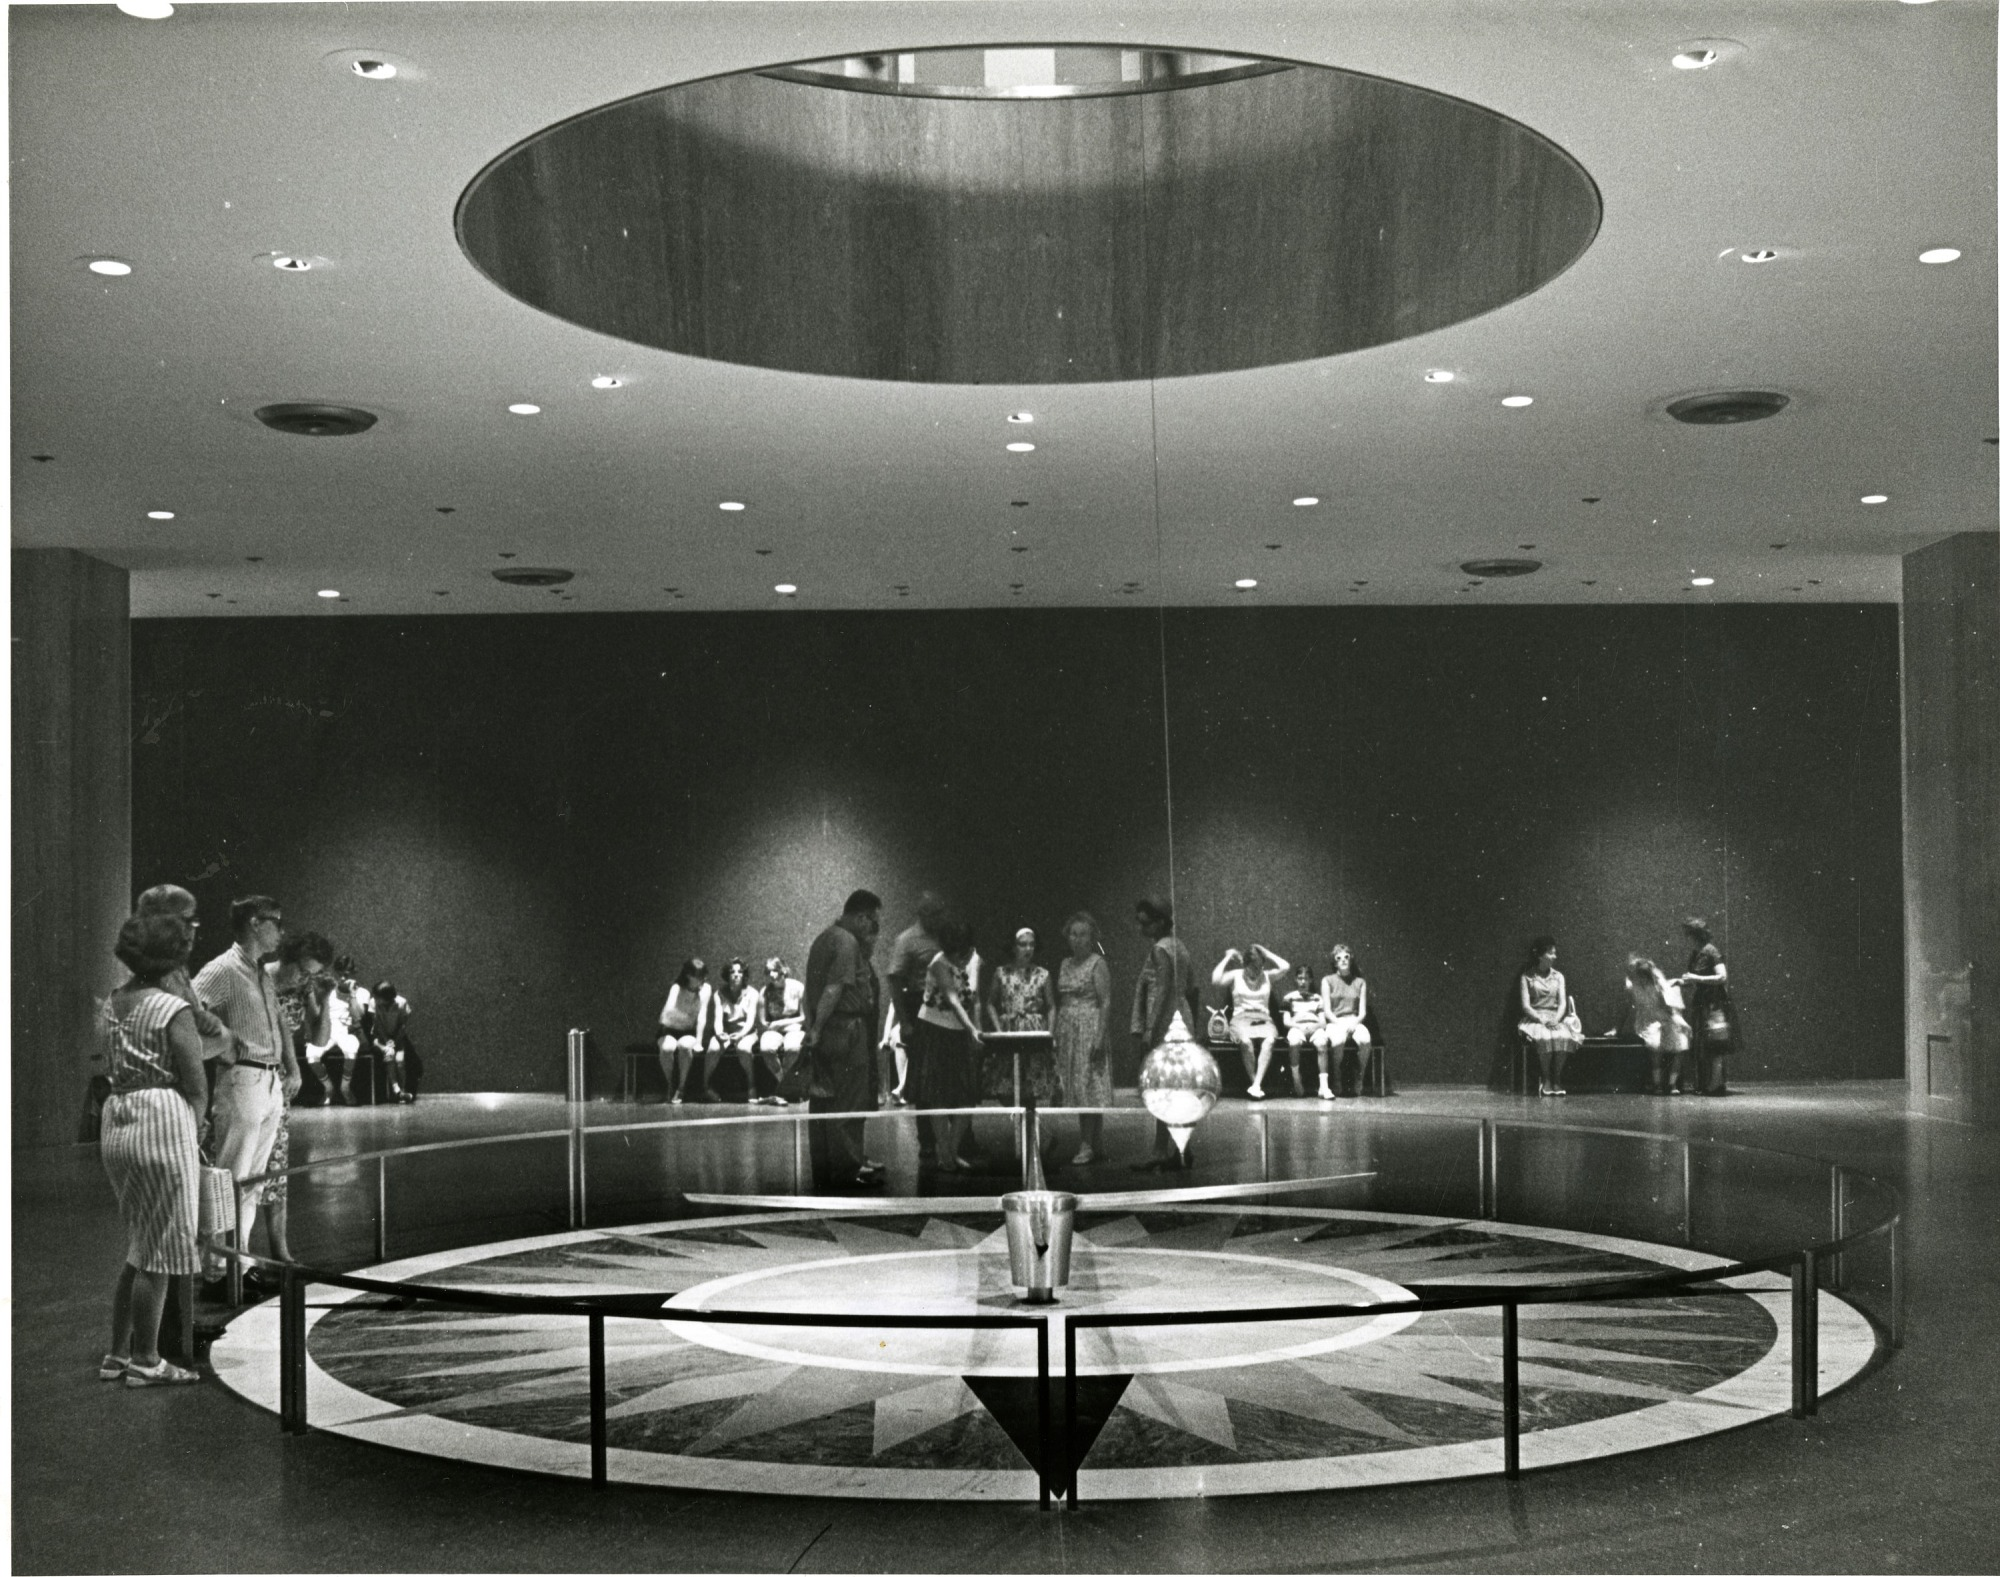 Pendulum Hall in NMHT, by Unknown, c. 1970, Smithsonian Archives - History Div, SIA2010-2908 or P64131-F or P64131-f.10.